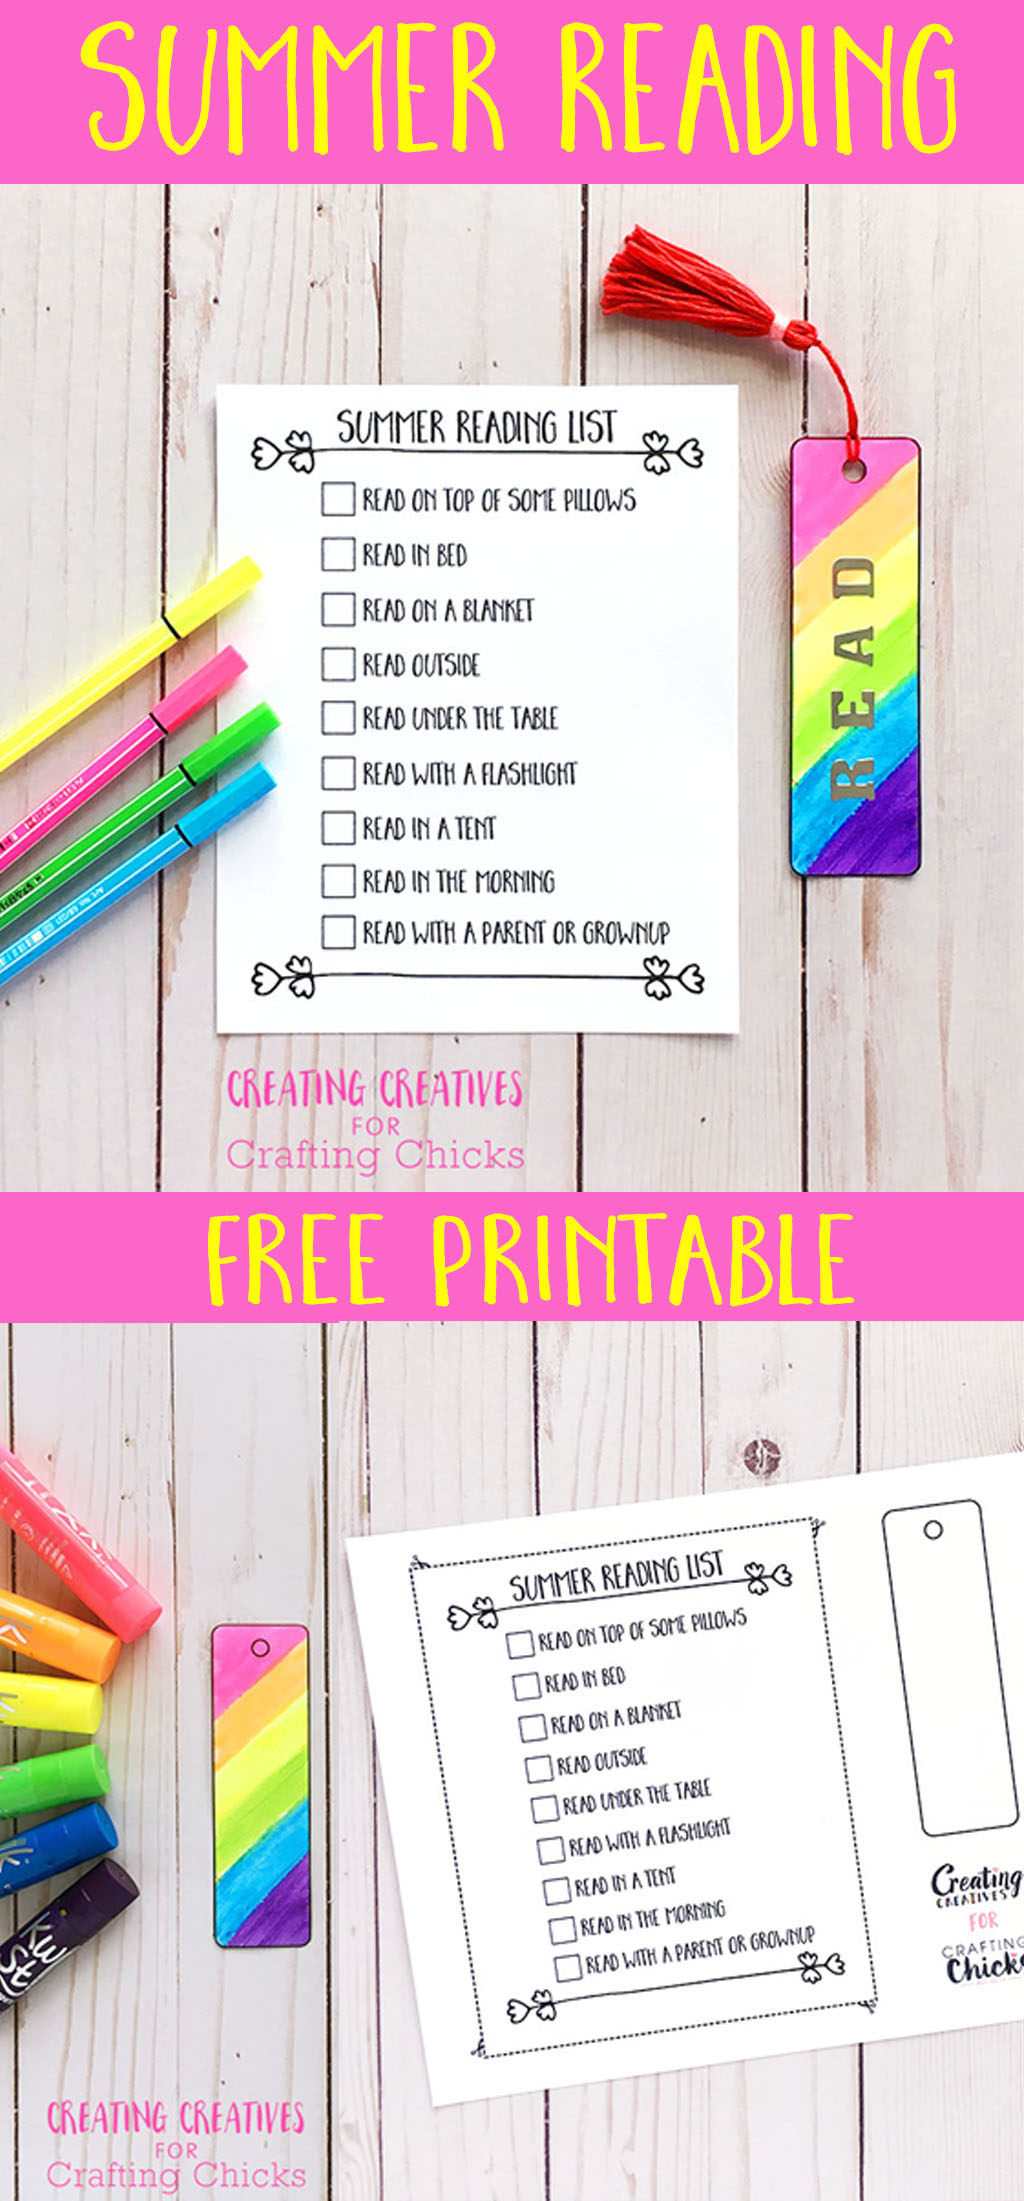 DIY Tassel Bookmarks | Printable Bookmarks and Reading List #kidscraft #reading #summer